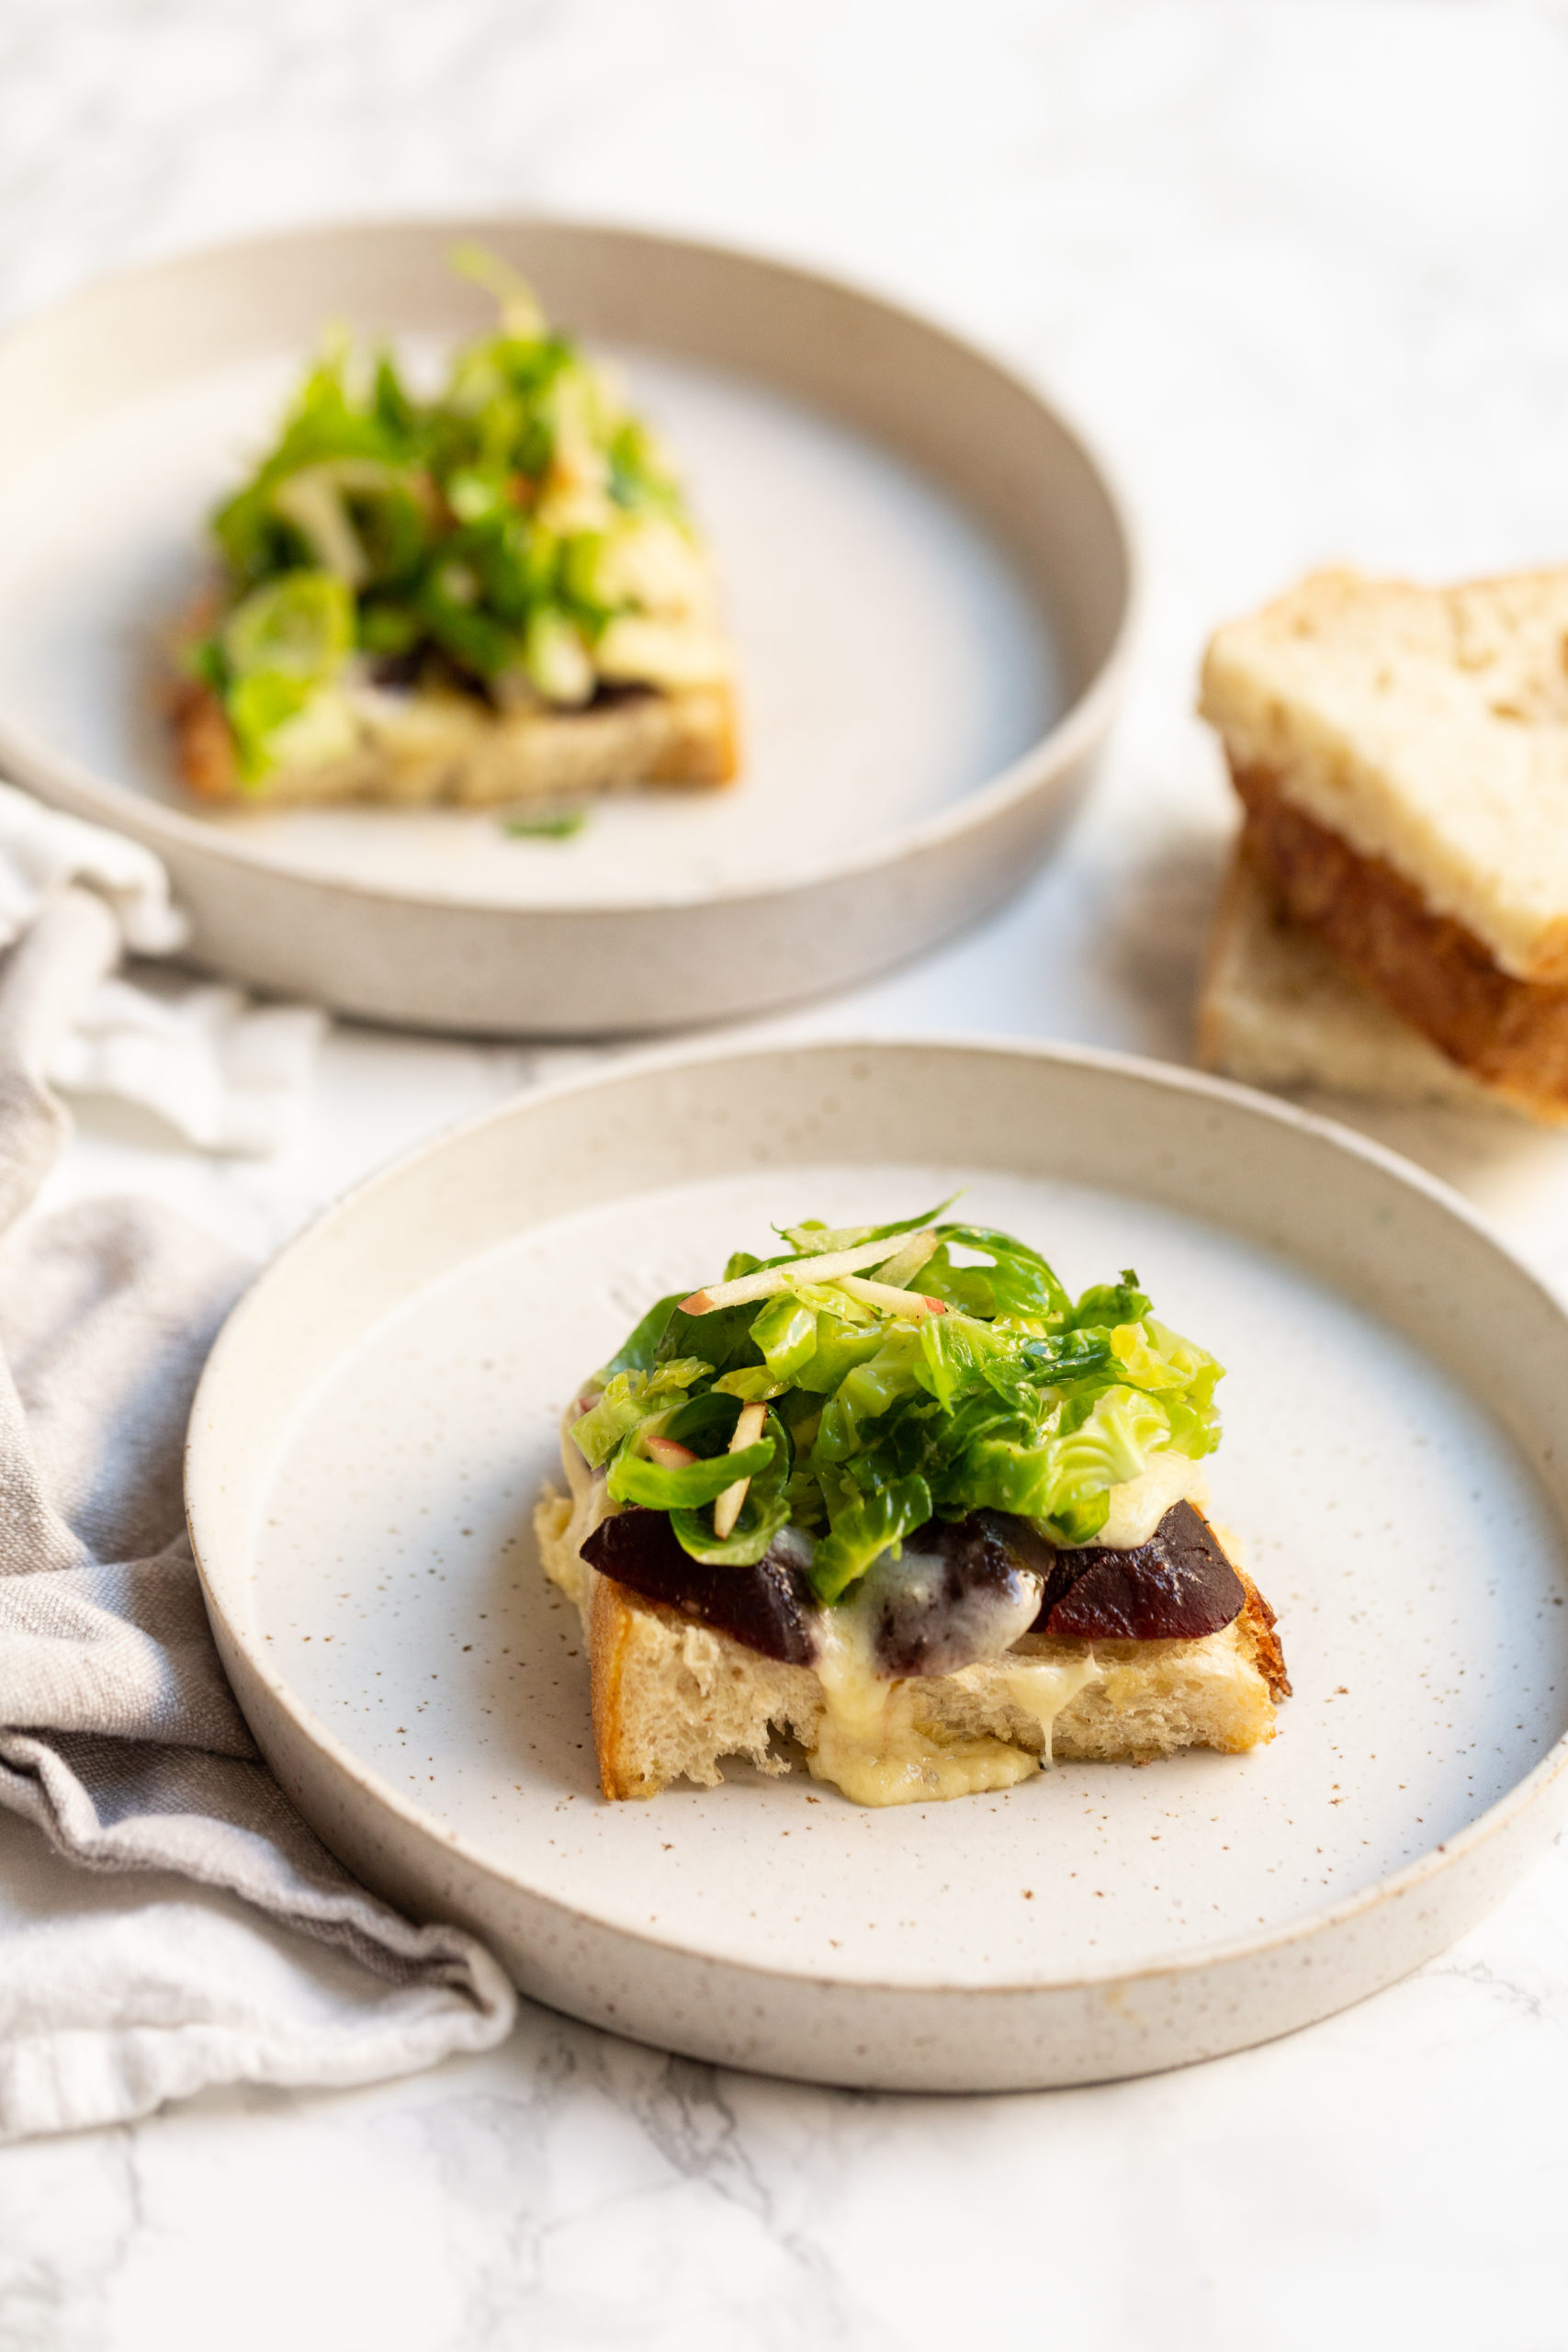 Gruyere and Beet Sourdough Sandwiches with Apple and Brussels Sprouts Slaw